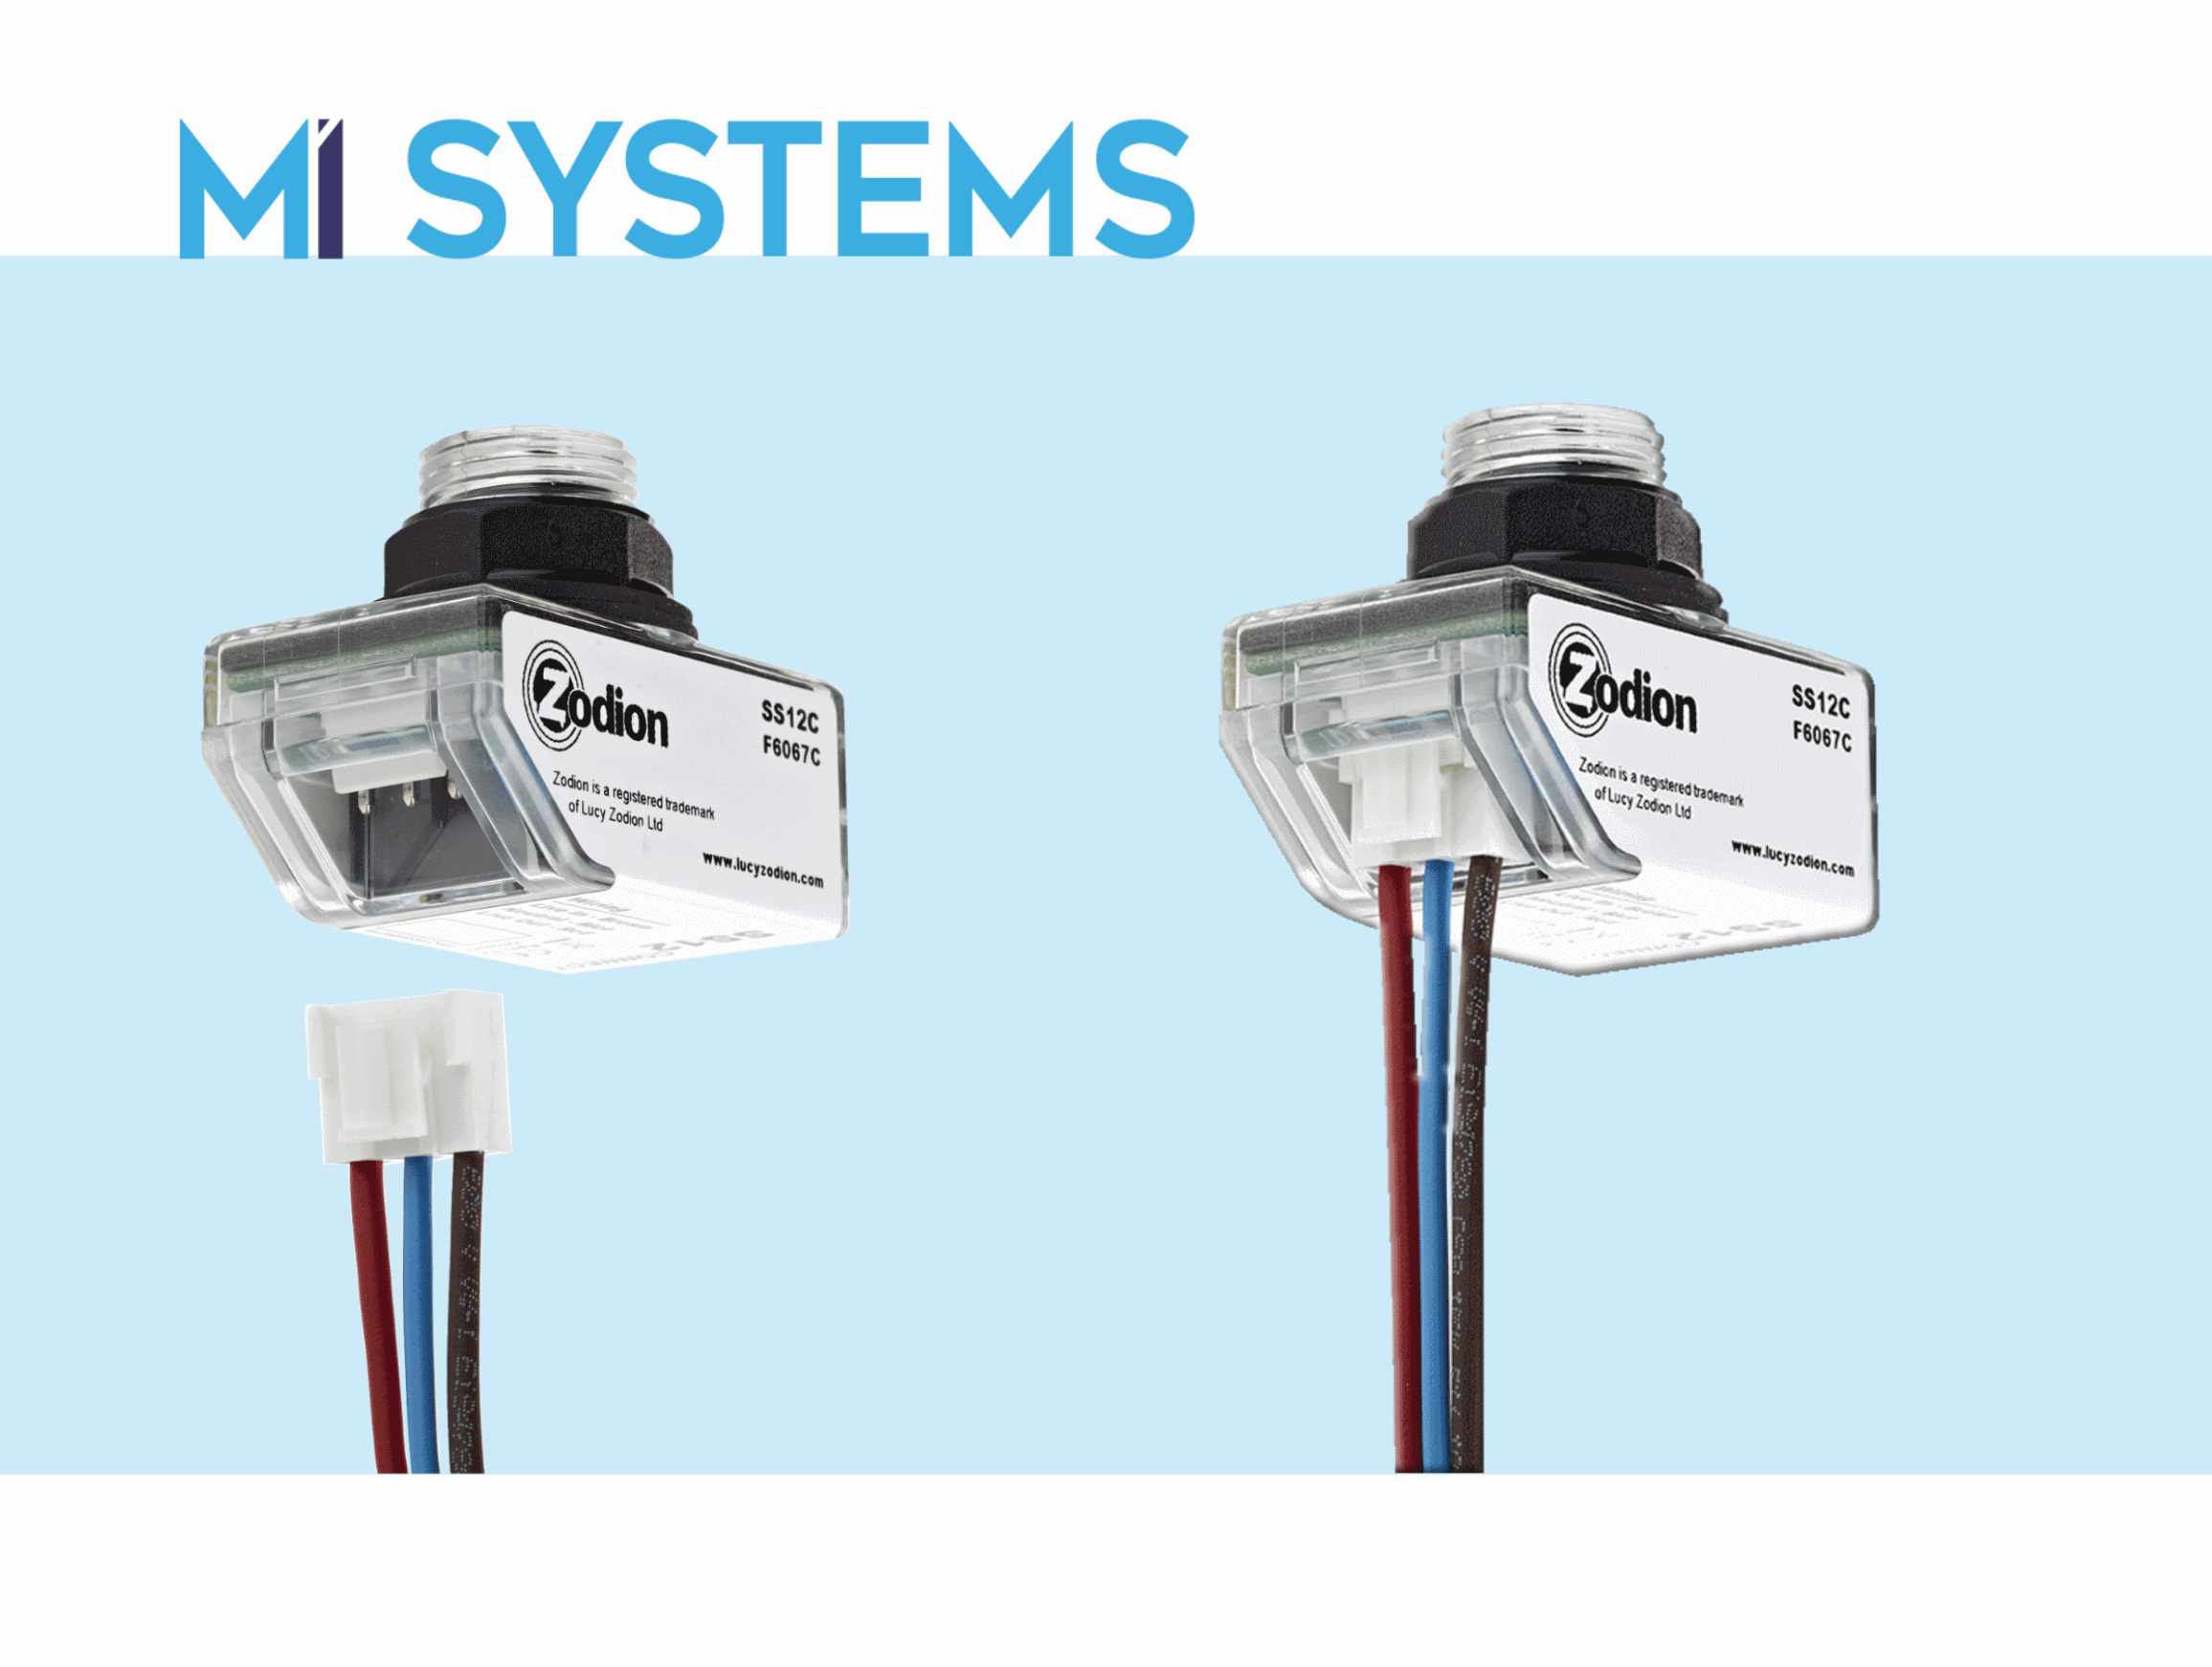 NEW: SS12CONNECT Miniature Photocells